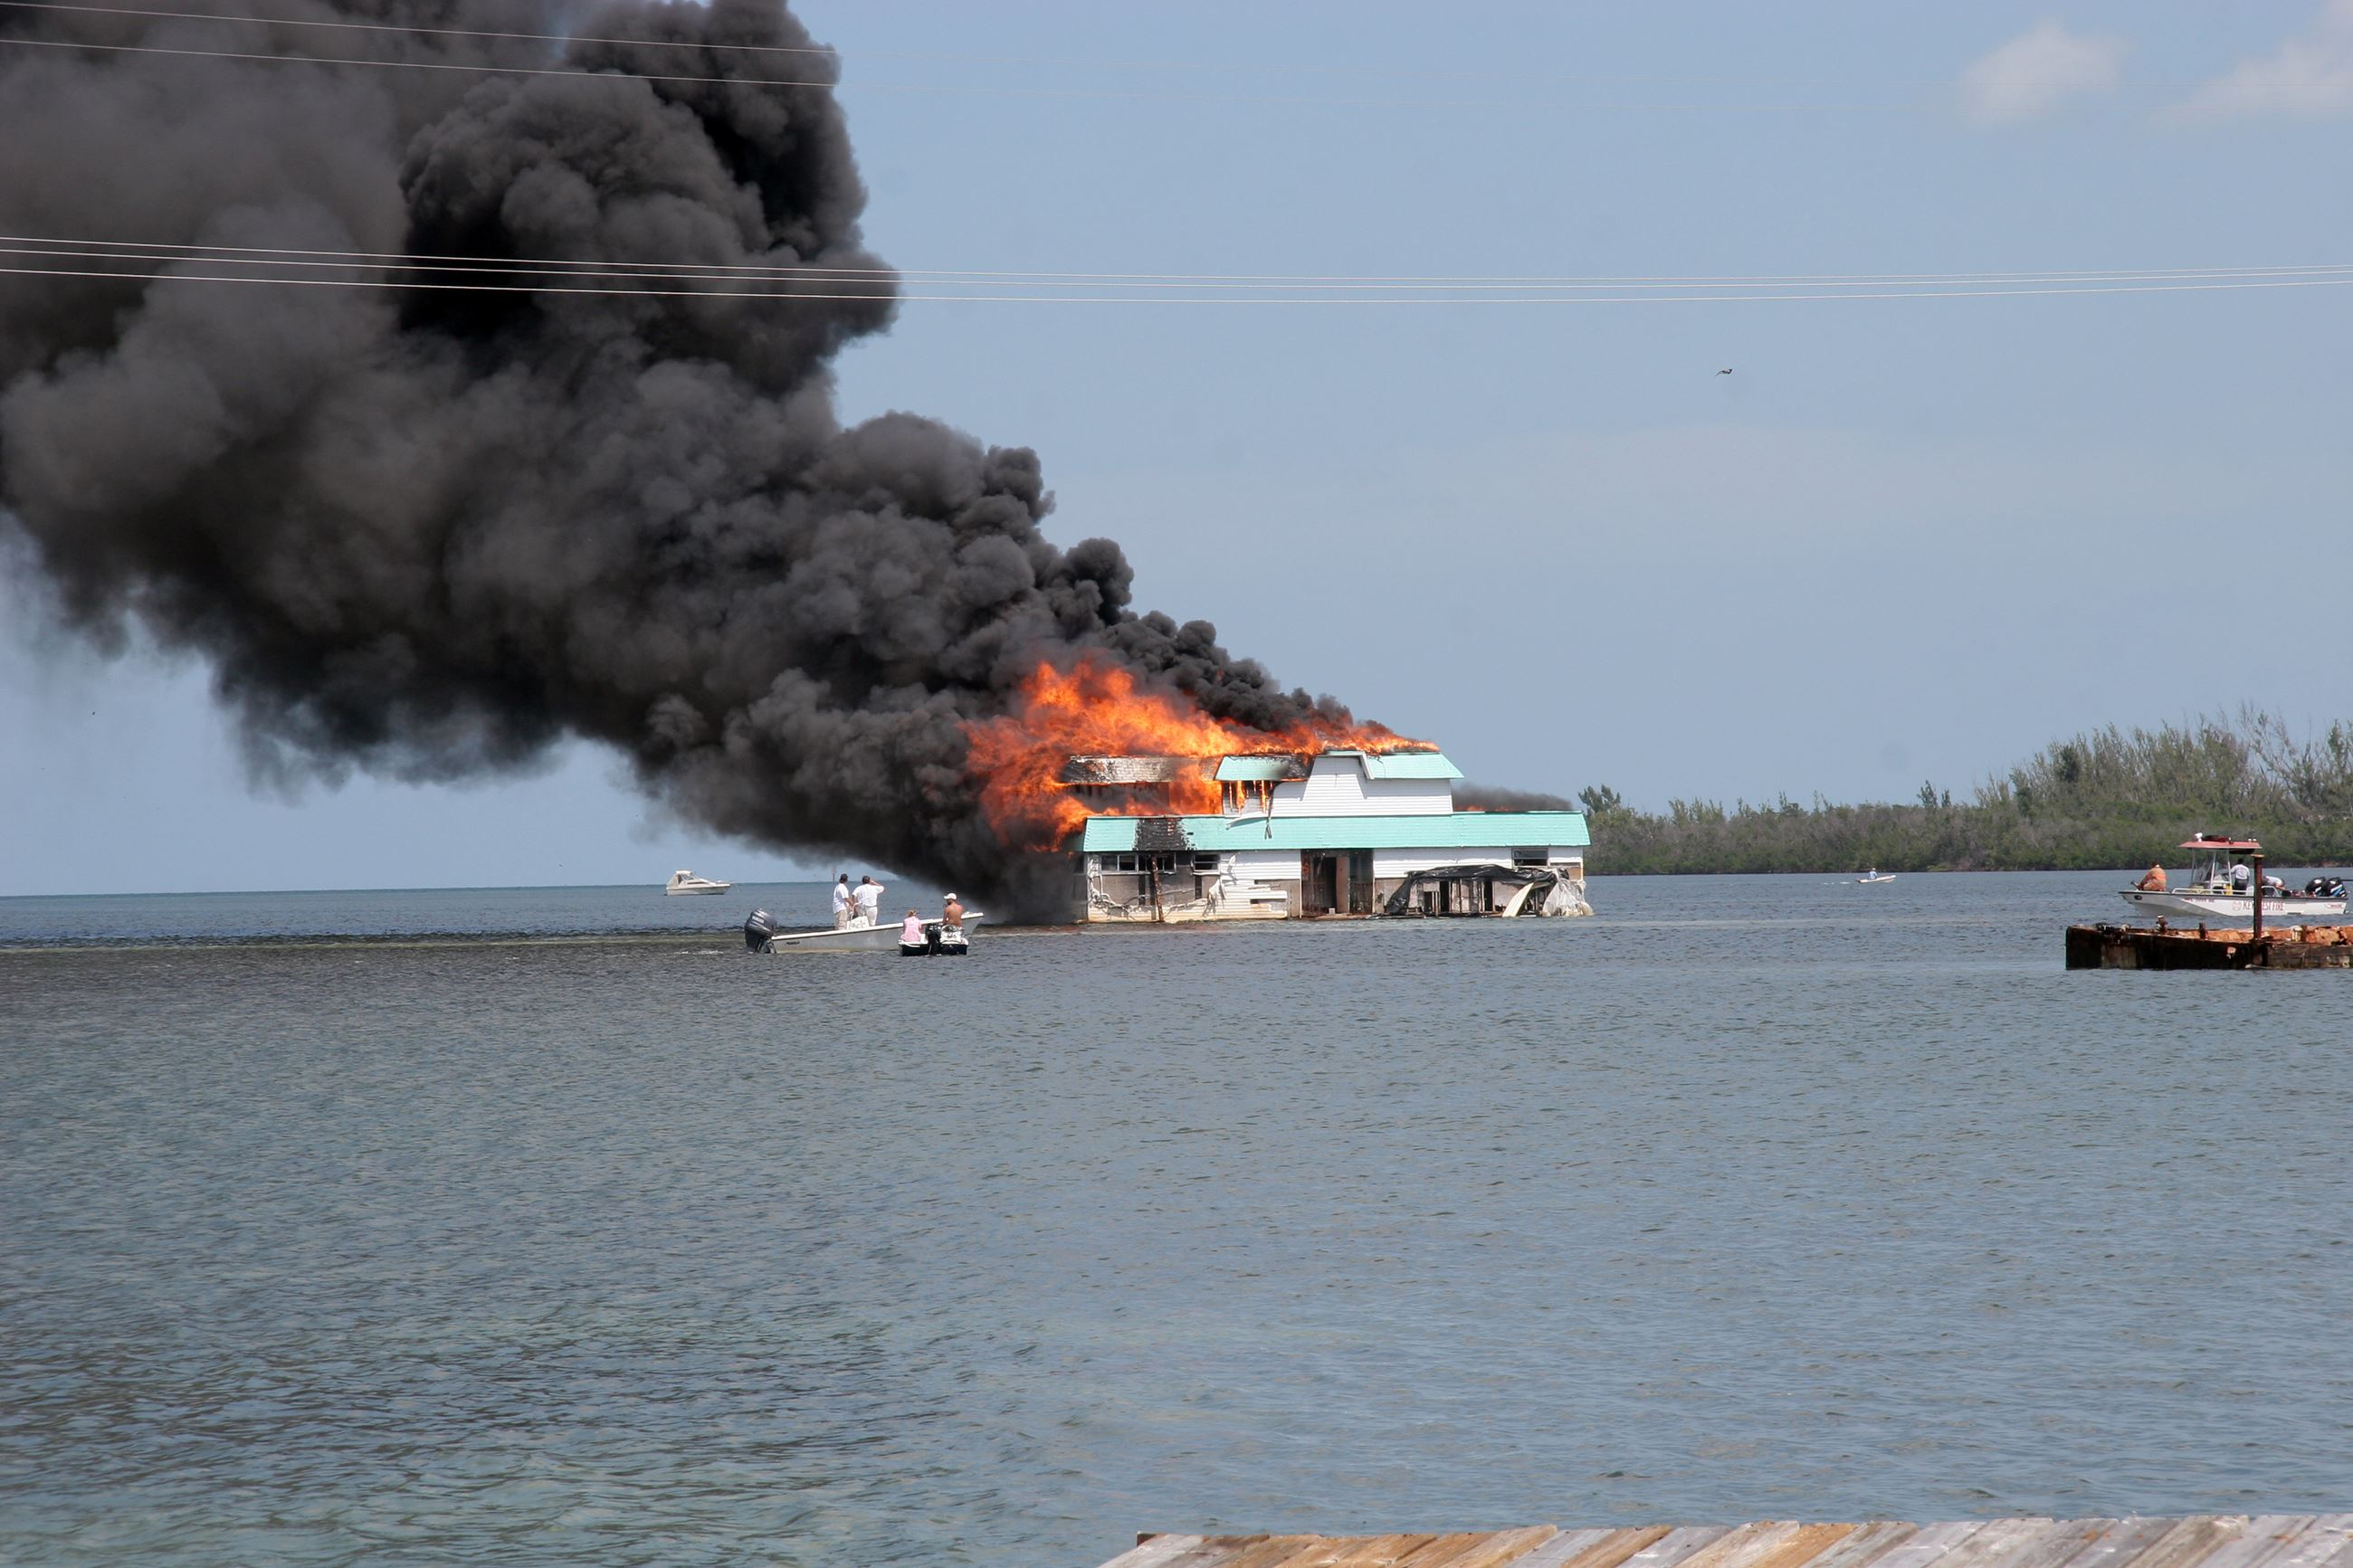 A House Boat on Fire off of Hilton Haven